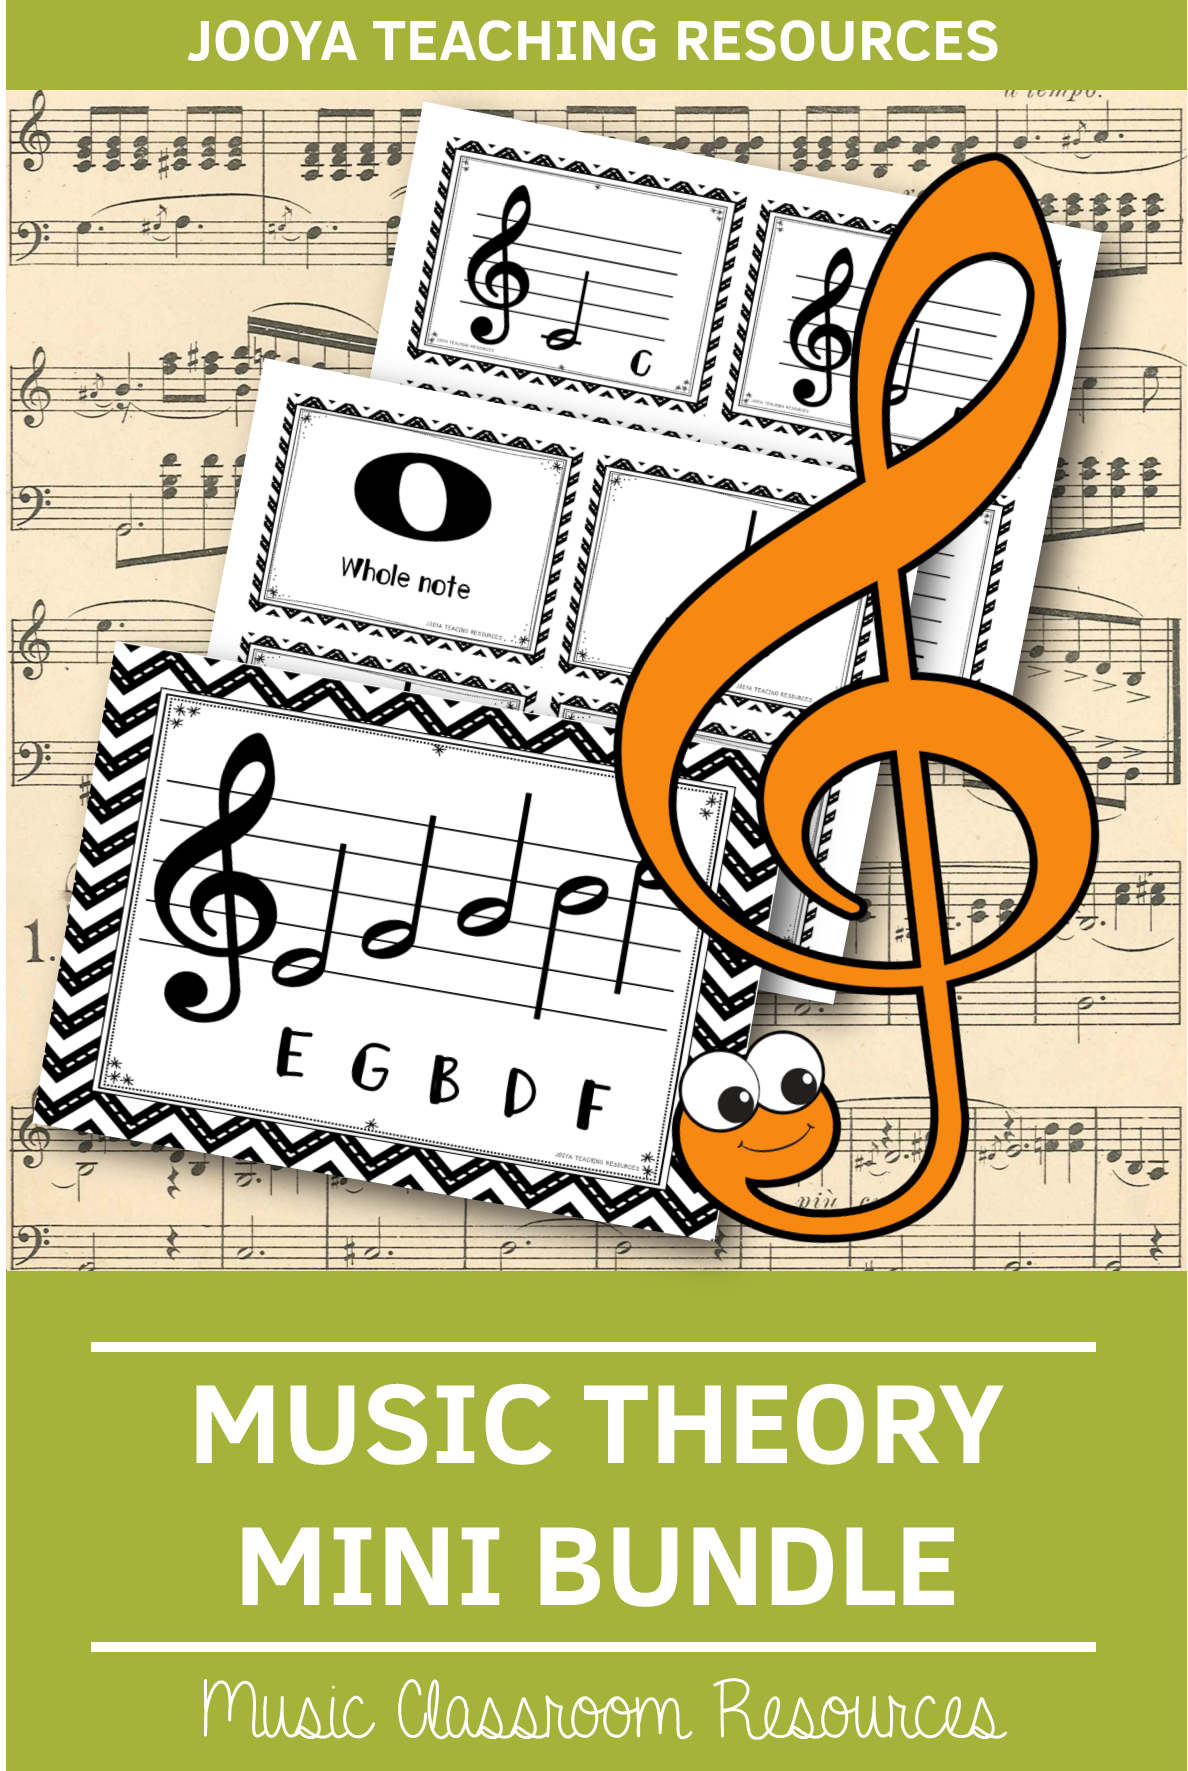 Music Theory Mini Bundle